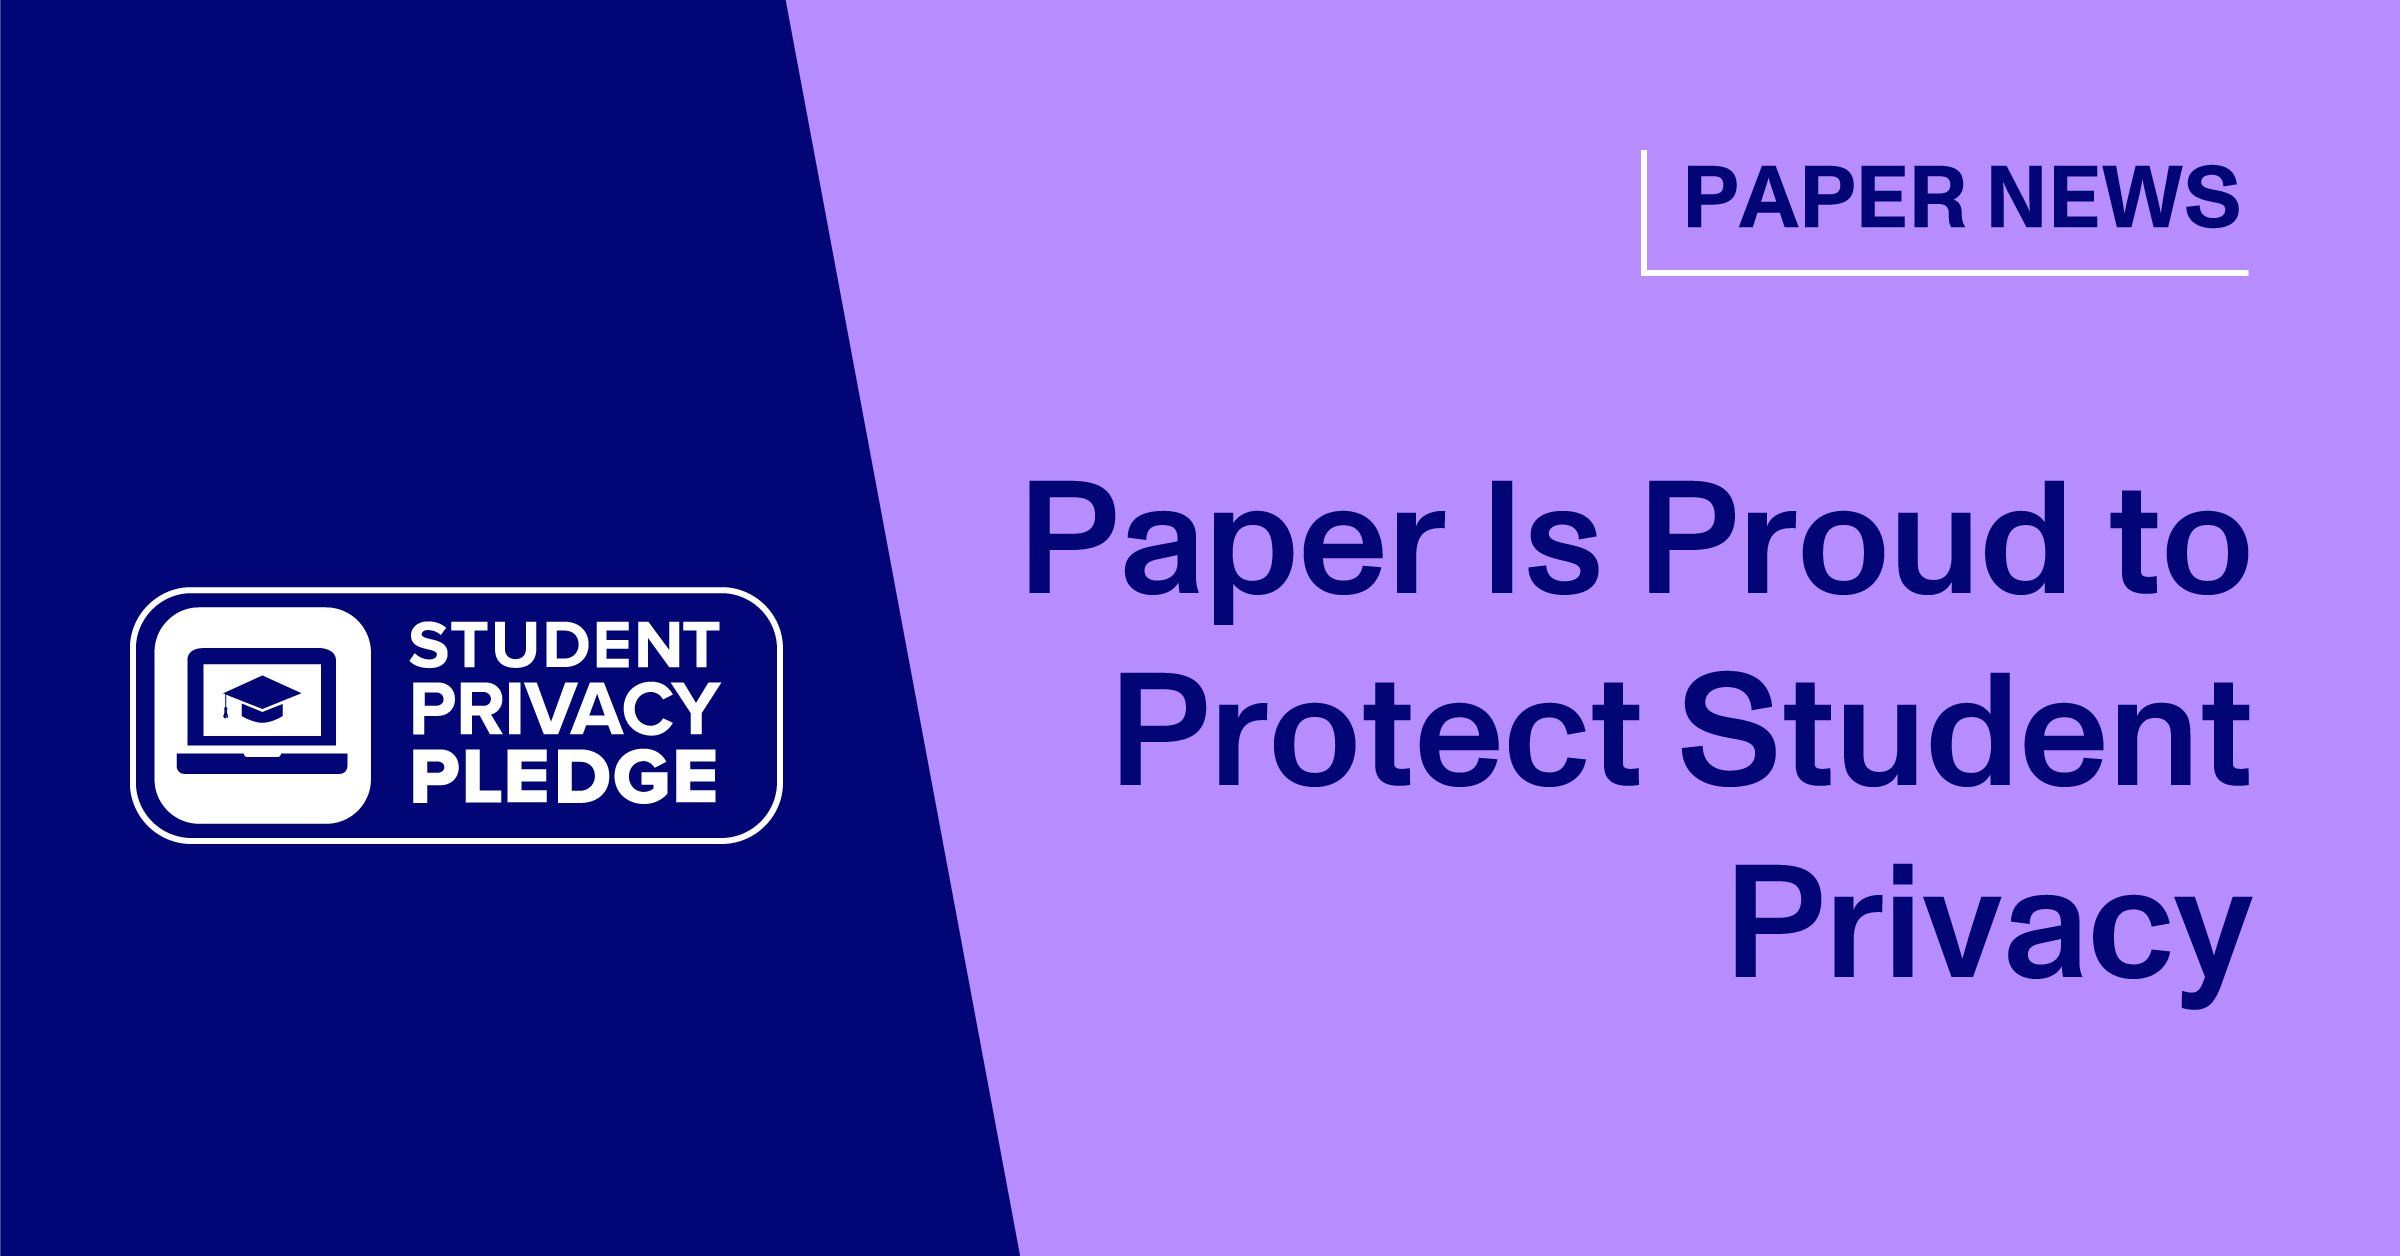 Paper Is Proud to Protect Student Privacy